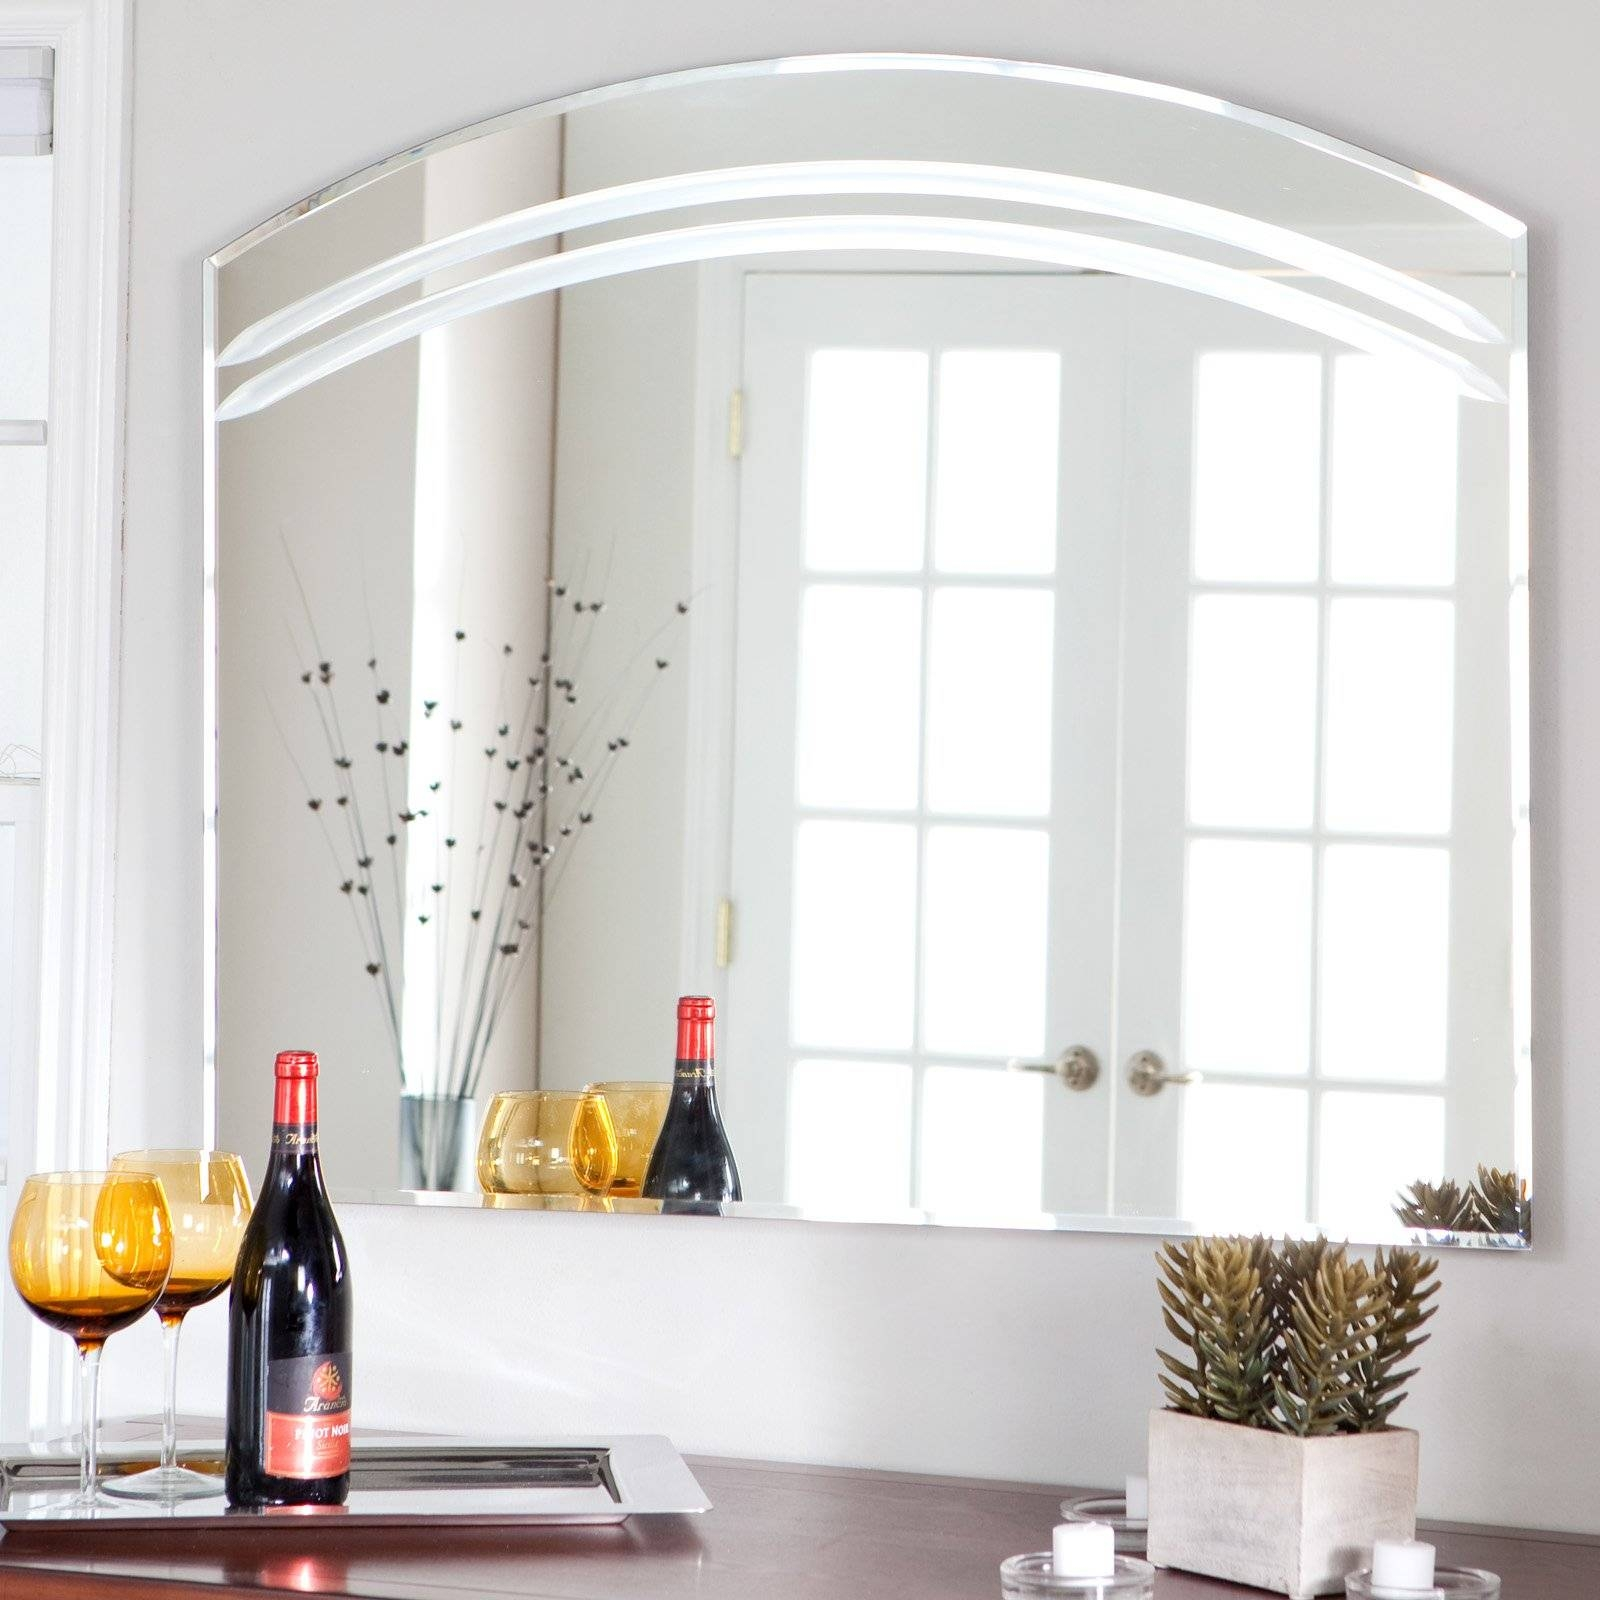 Décor Wonderland Angel Large Frameless Arched Wall Mirror - 39.5W with Frameless Wall Mirrors (Image 3 of 15)